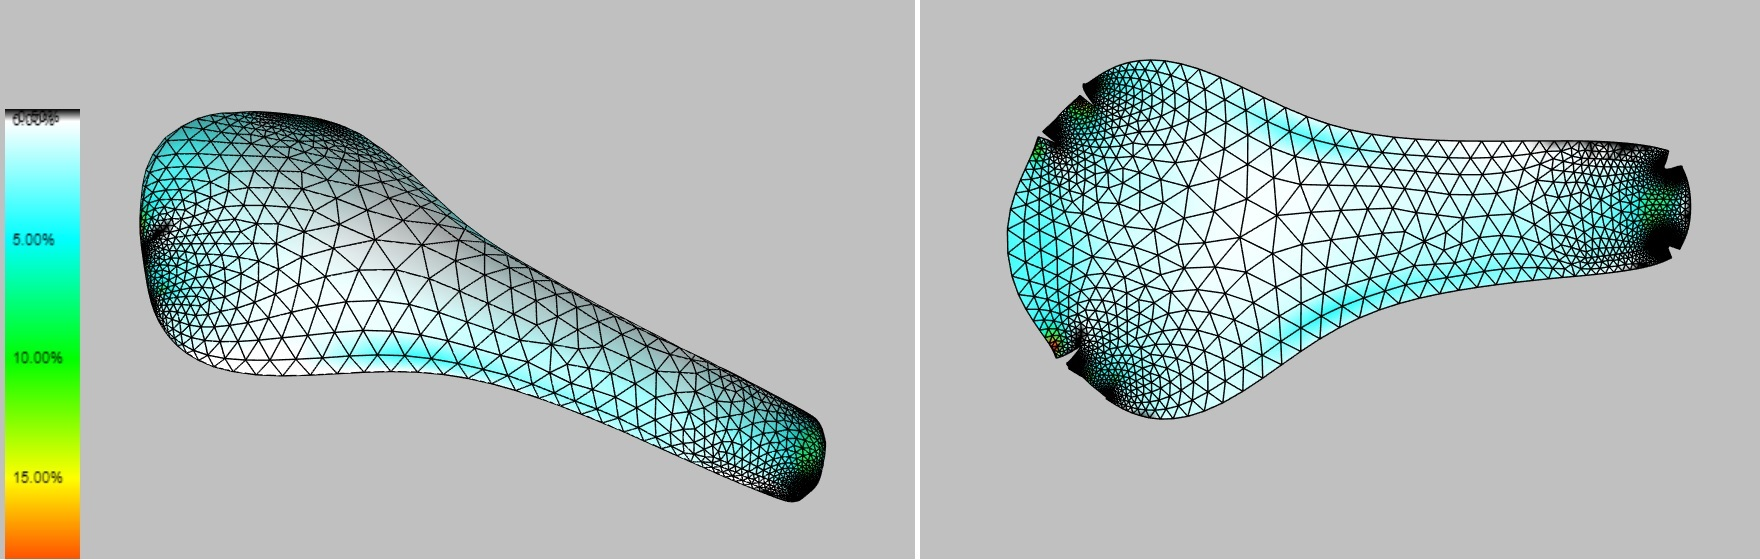 3D to 2D pattern making was a slow, tedious and imprecise process until Kemmann and the team made the transition to digital patterning. Now they can create patterns in minutes and identify issues before any materials are cut.